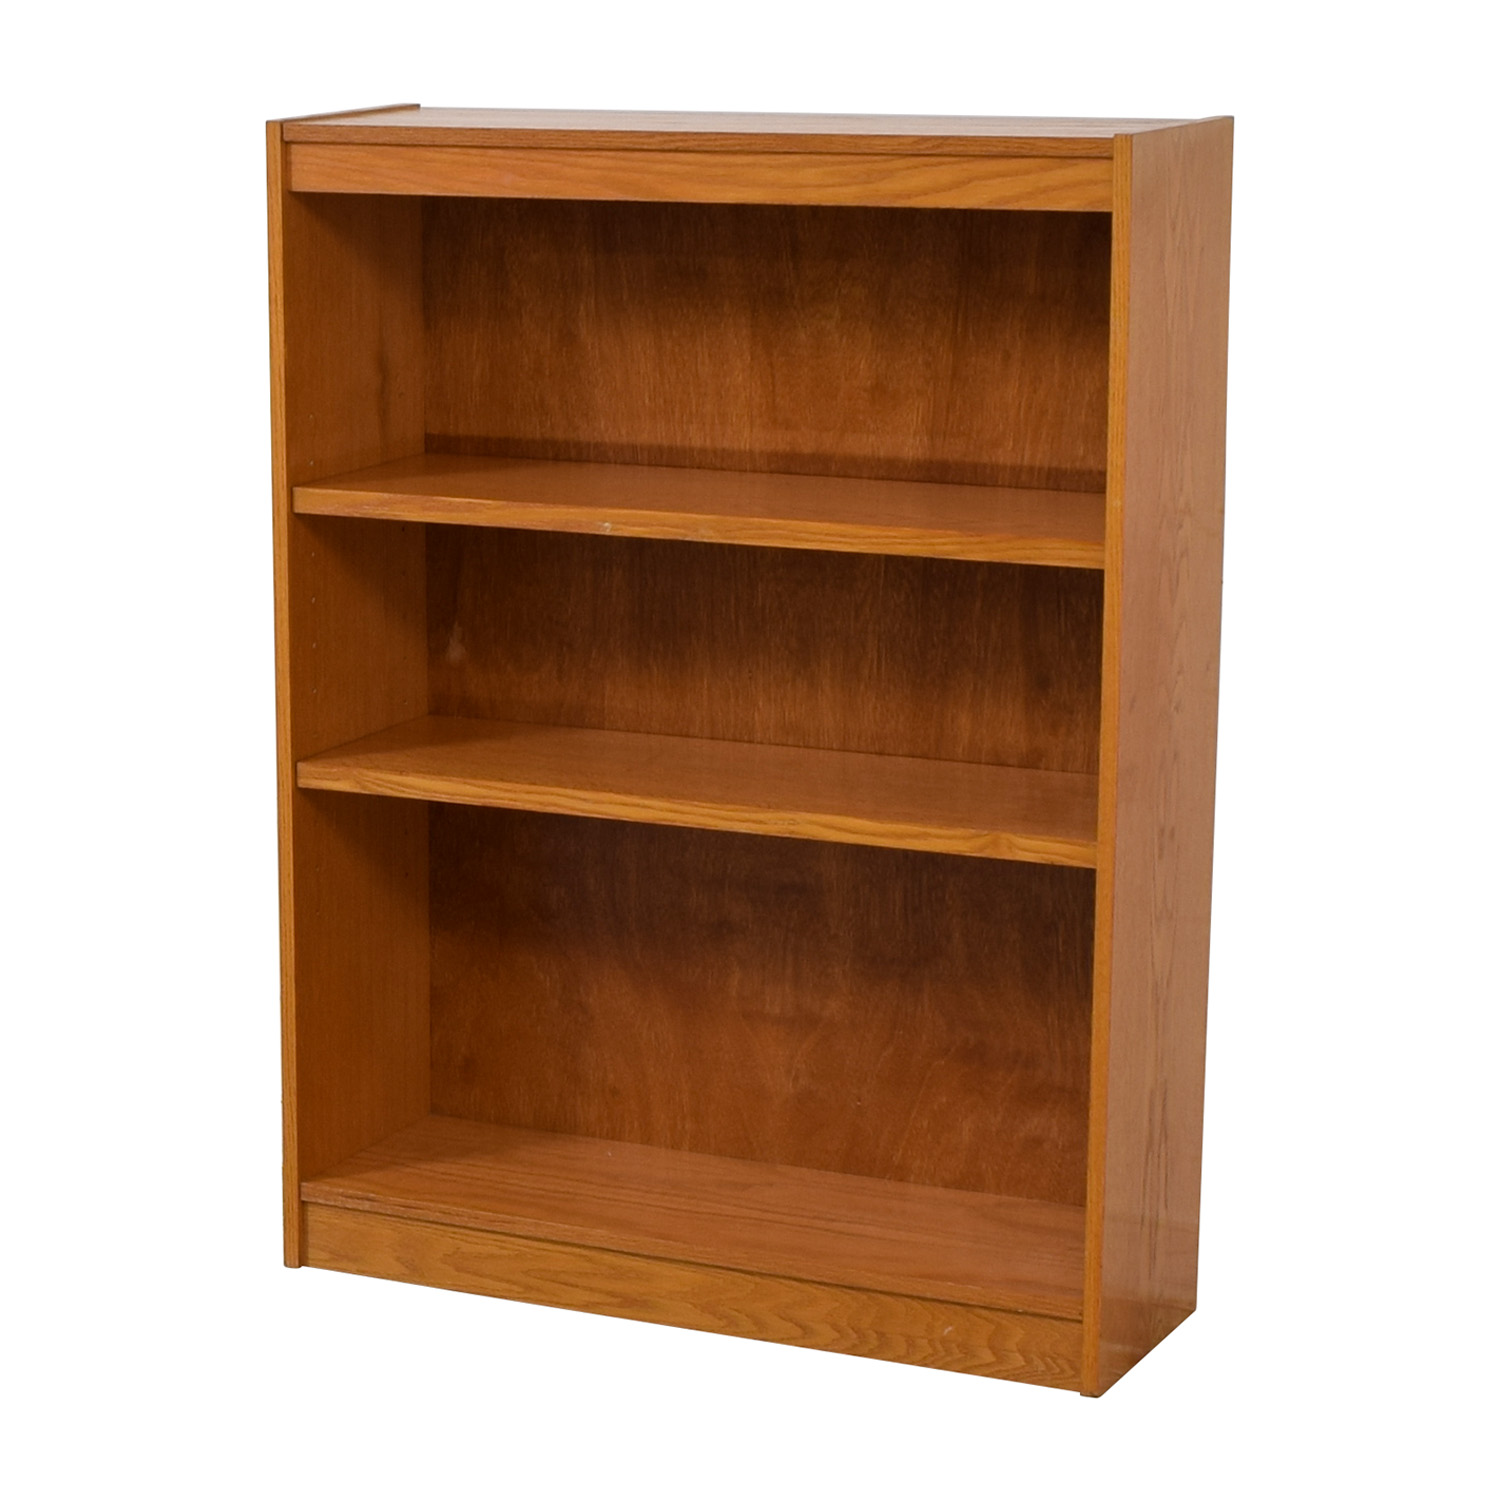 Adjustable Shelving Bookcase second hand